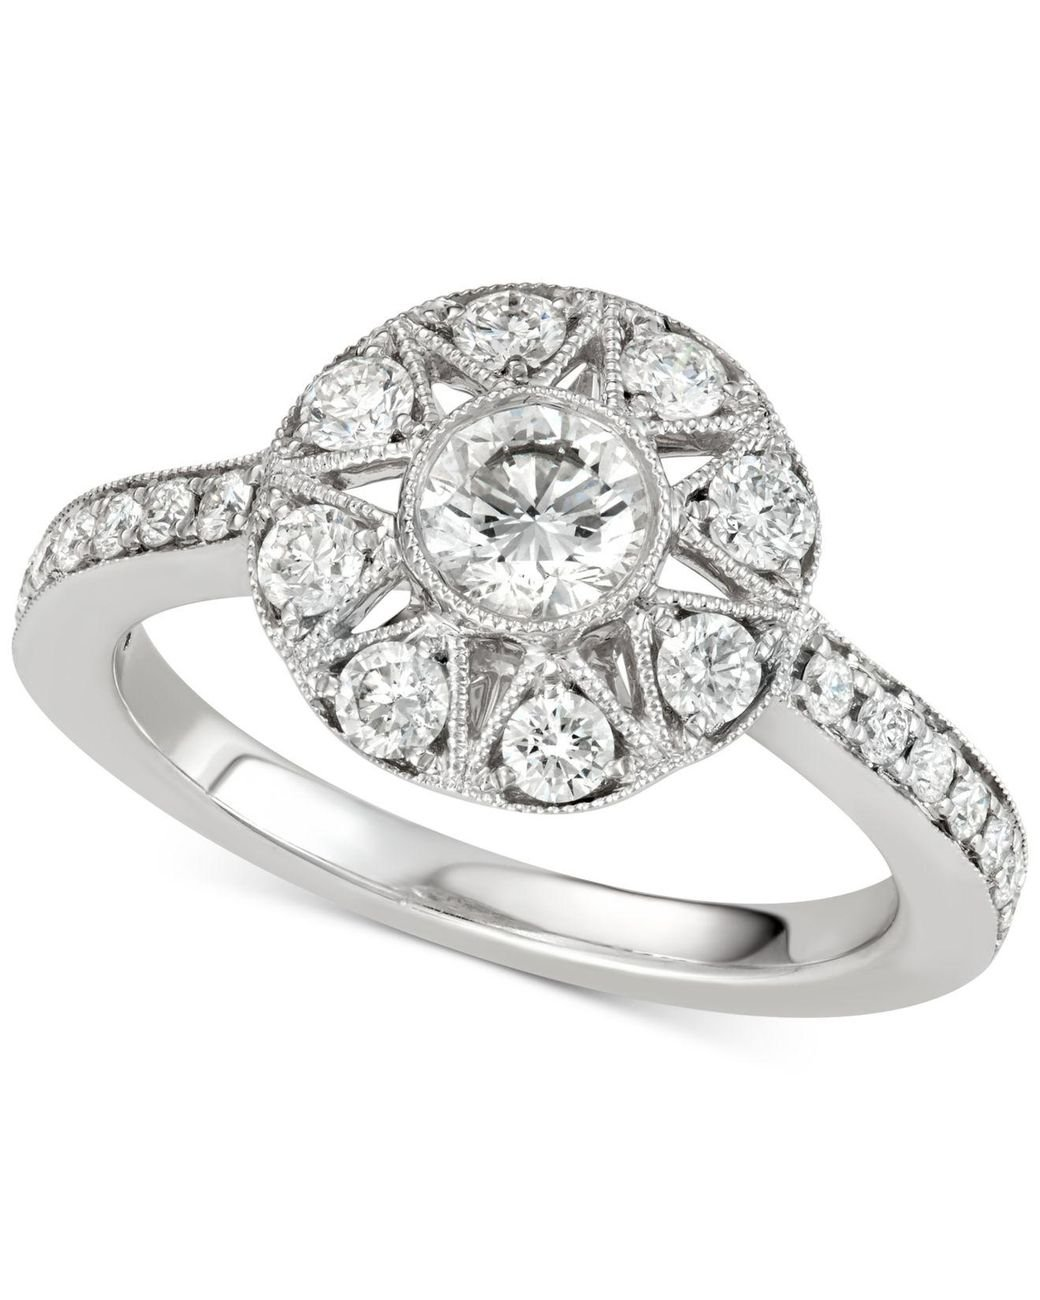 1 Ct Certified Genuine Diamond Solitaire 14k White Gold Ring